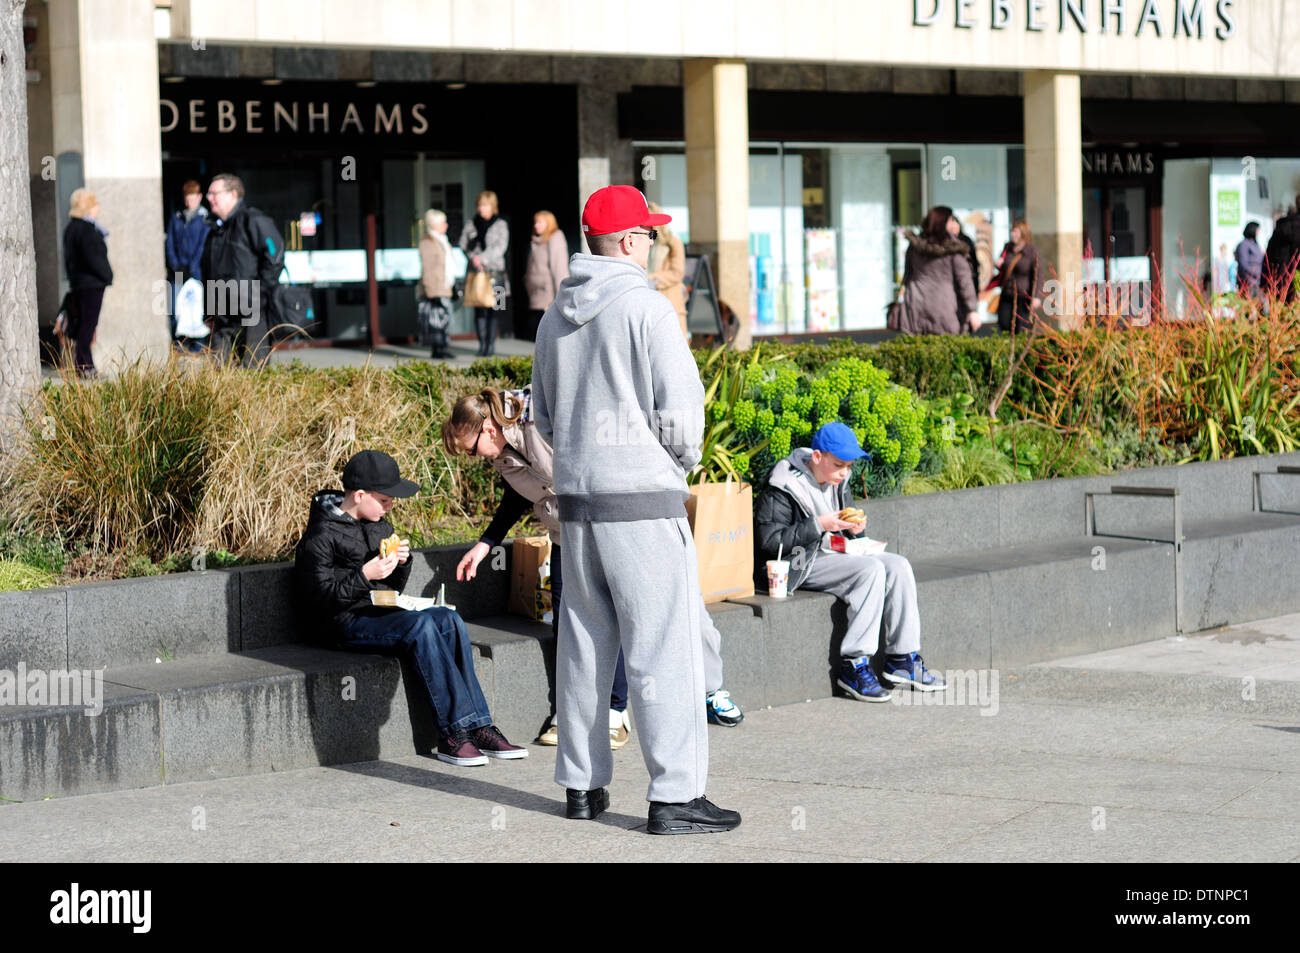 Nottingham market square ,Family eating fast food while sitting on wall. - Stock Image